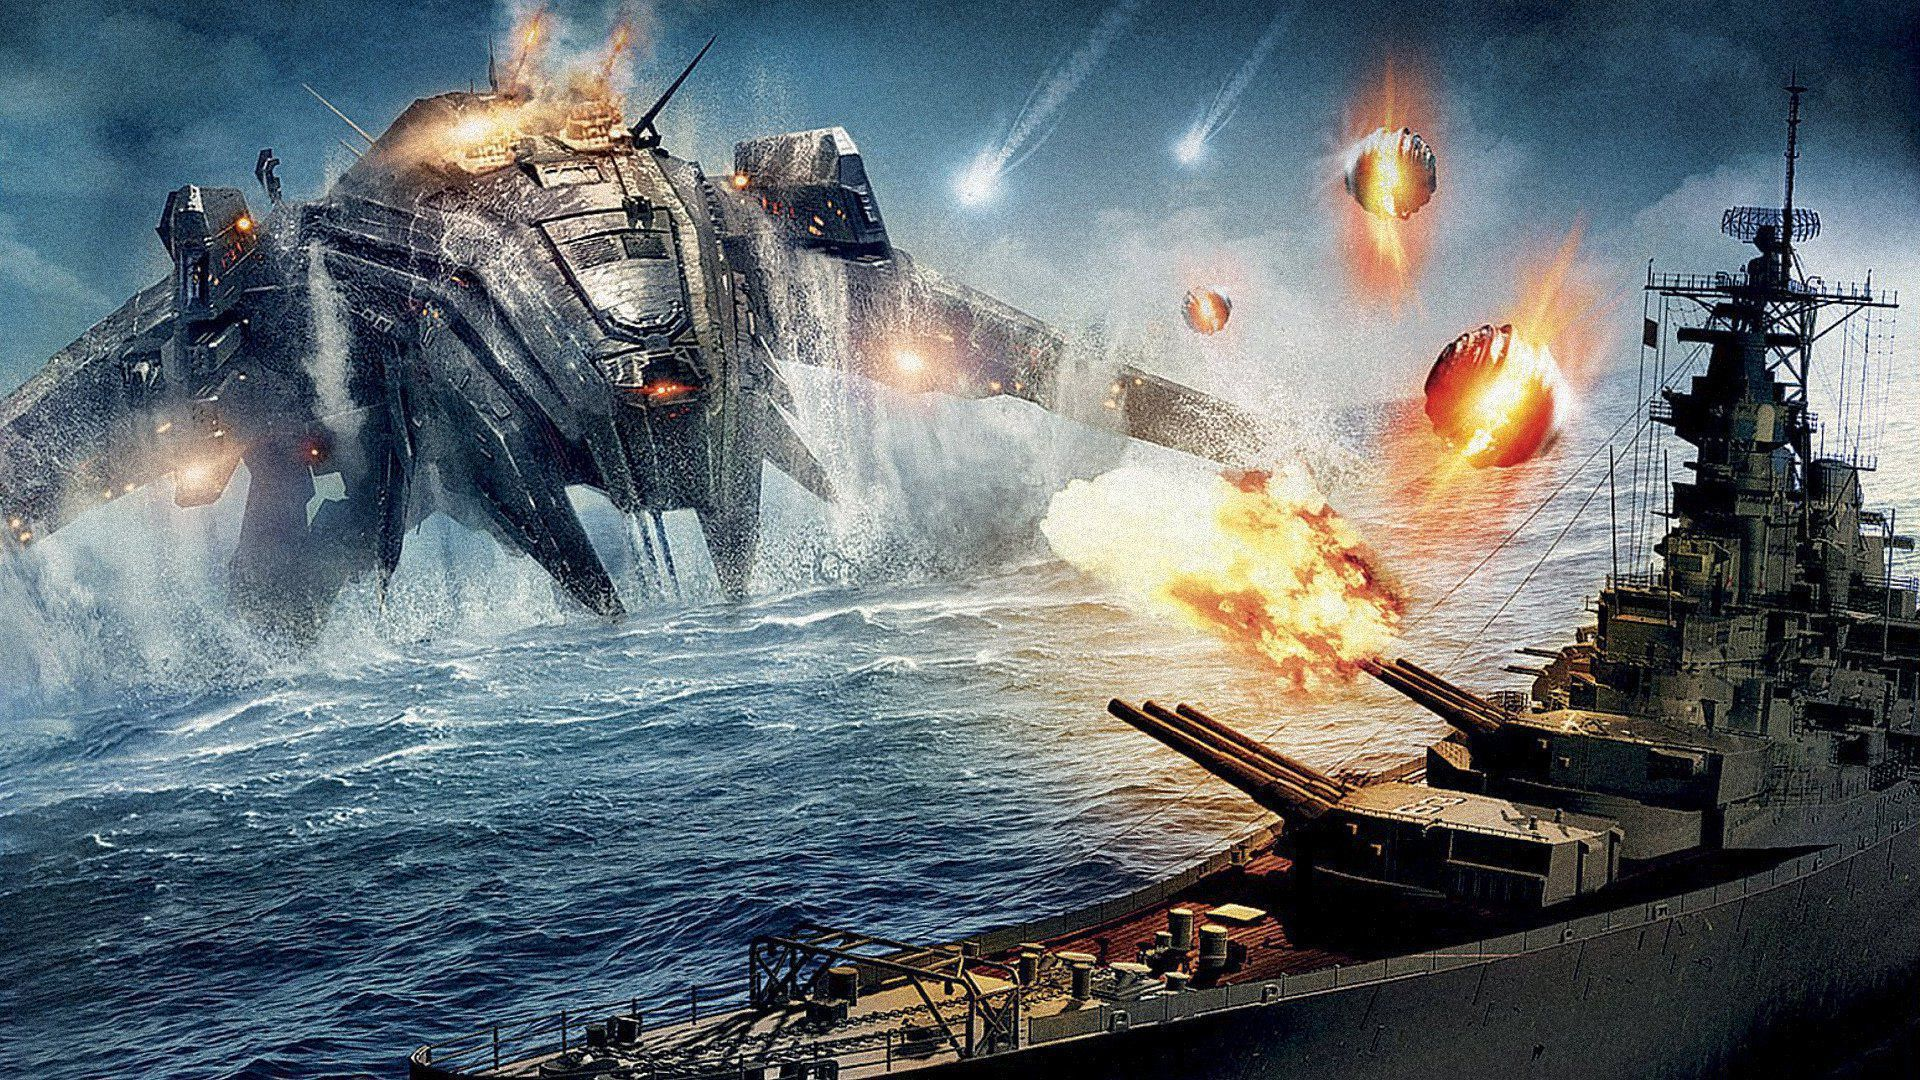 Battleship Wallpaper Pack